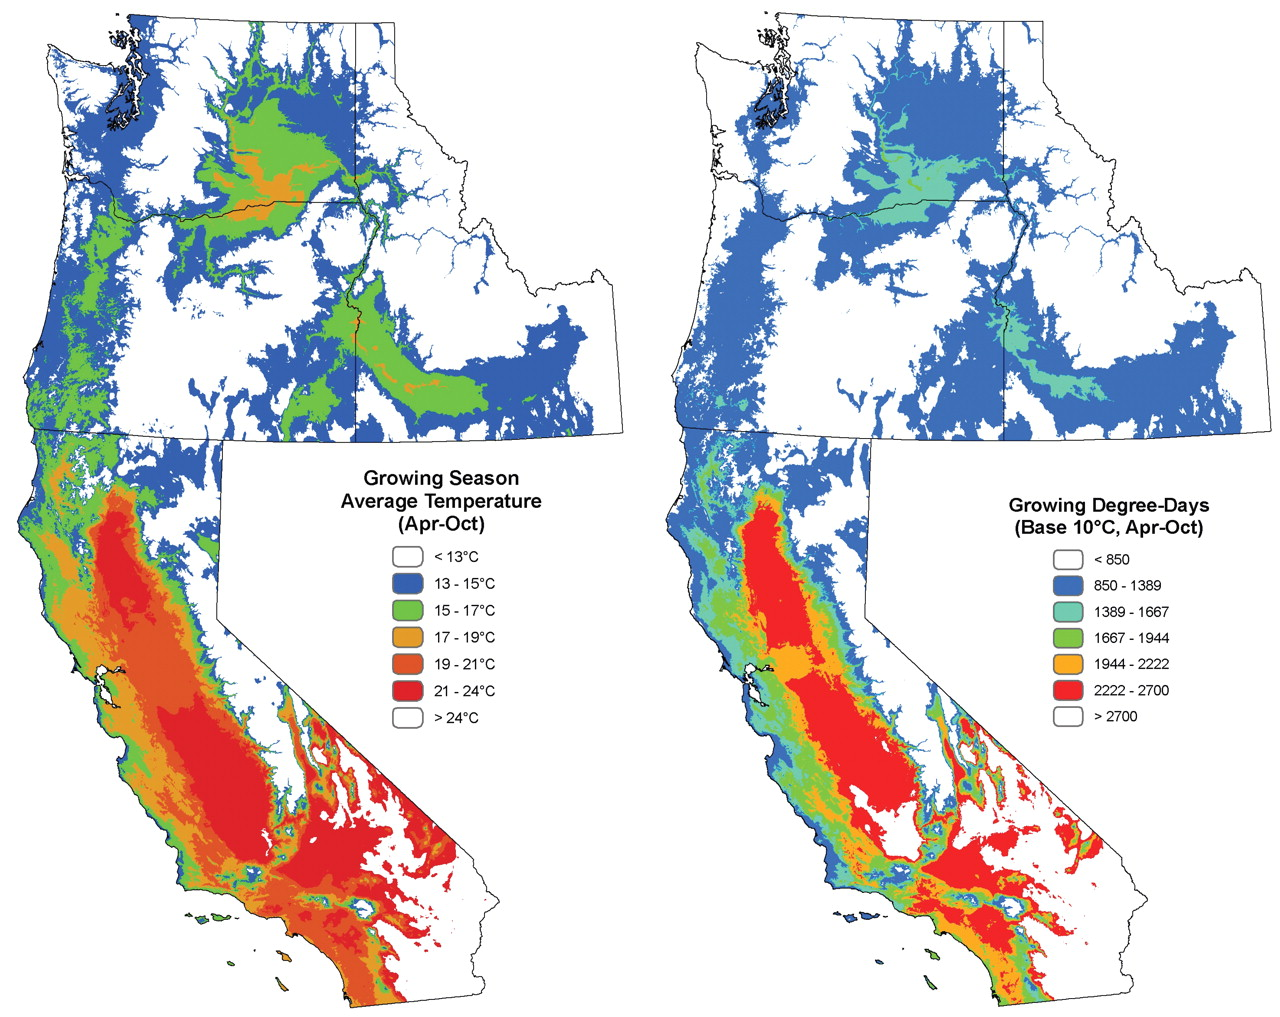 Spatial Analysis Of Climate In Winegrape Growing Regions In The - Us map winkler climate regions